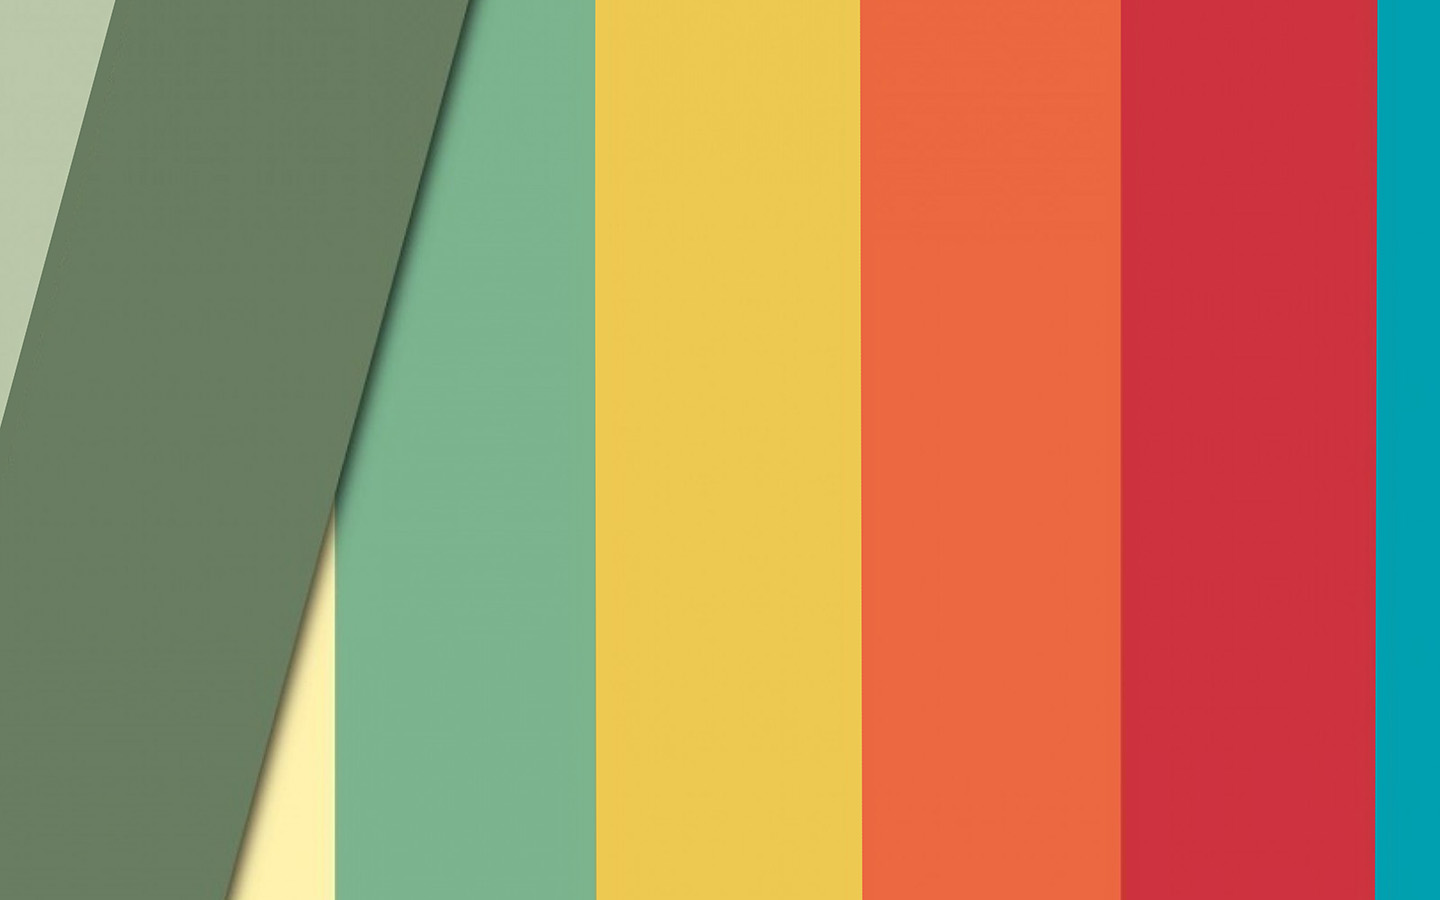 vn58linesrainbowcolorpatternwallpaper